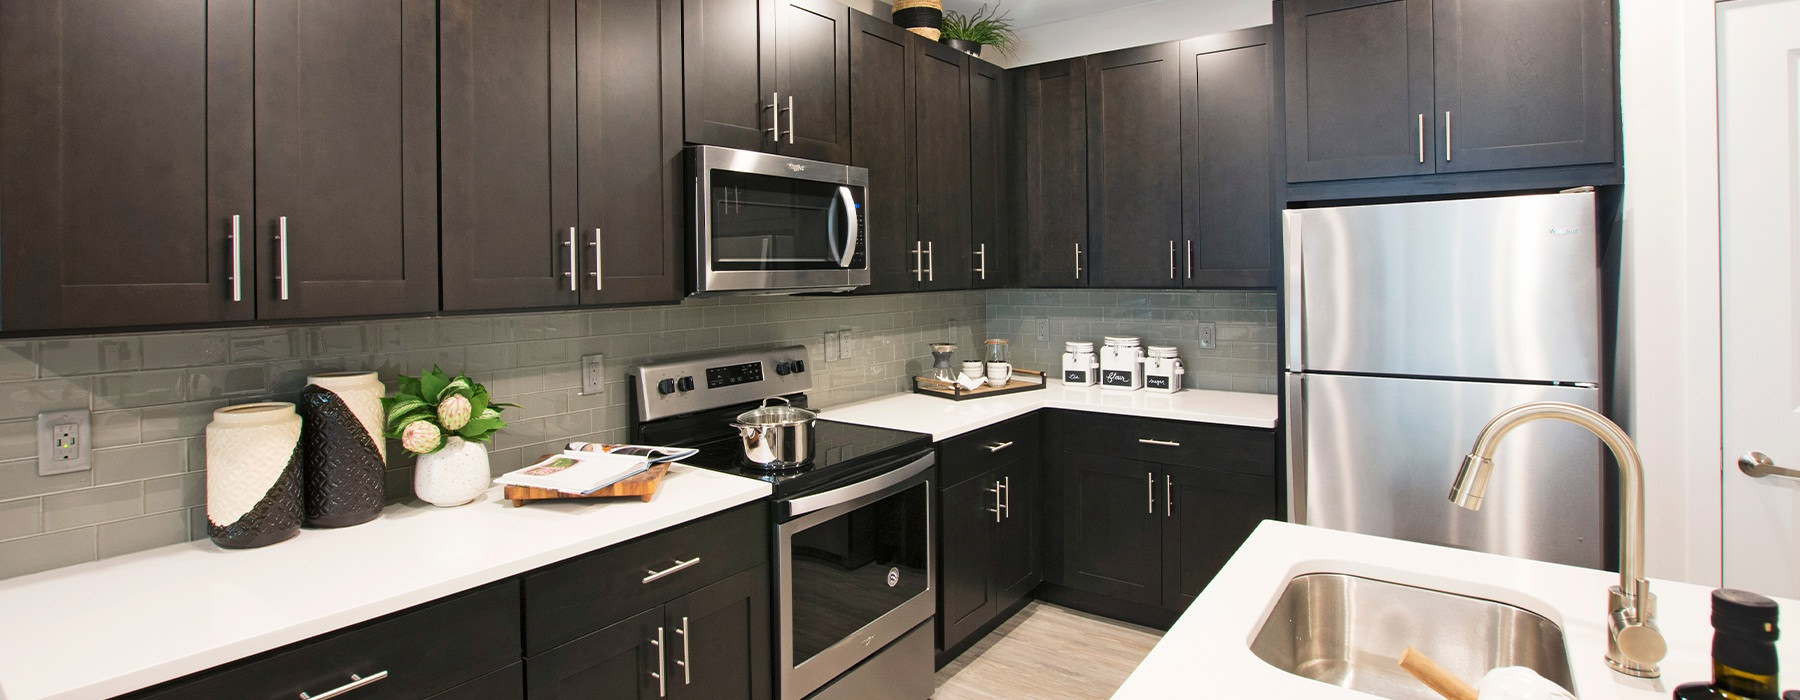 Kitchen with ample cabinet and countertop space